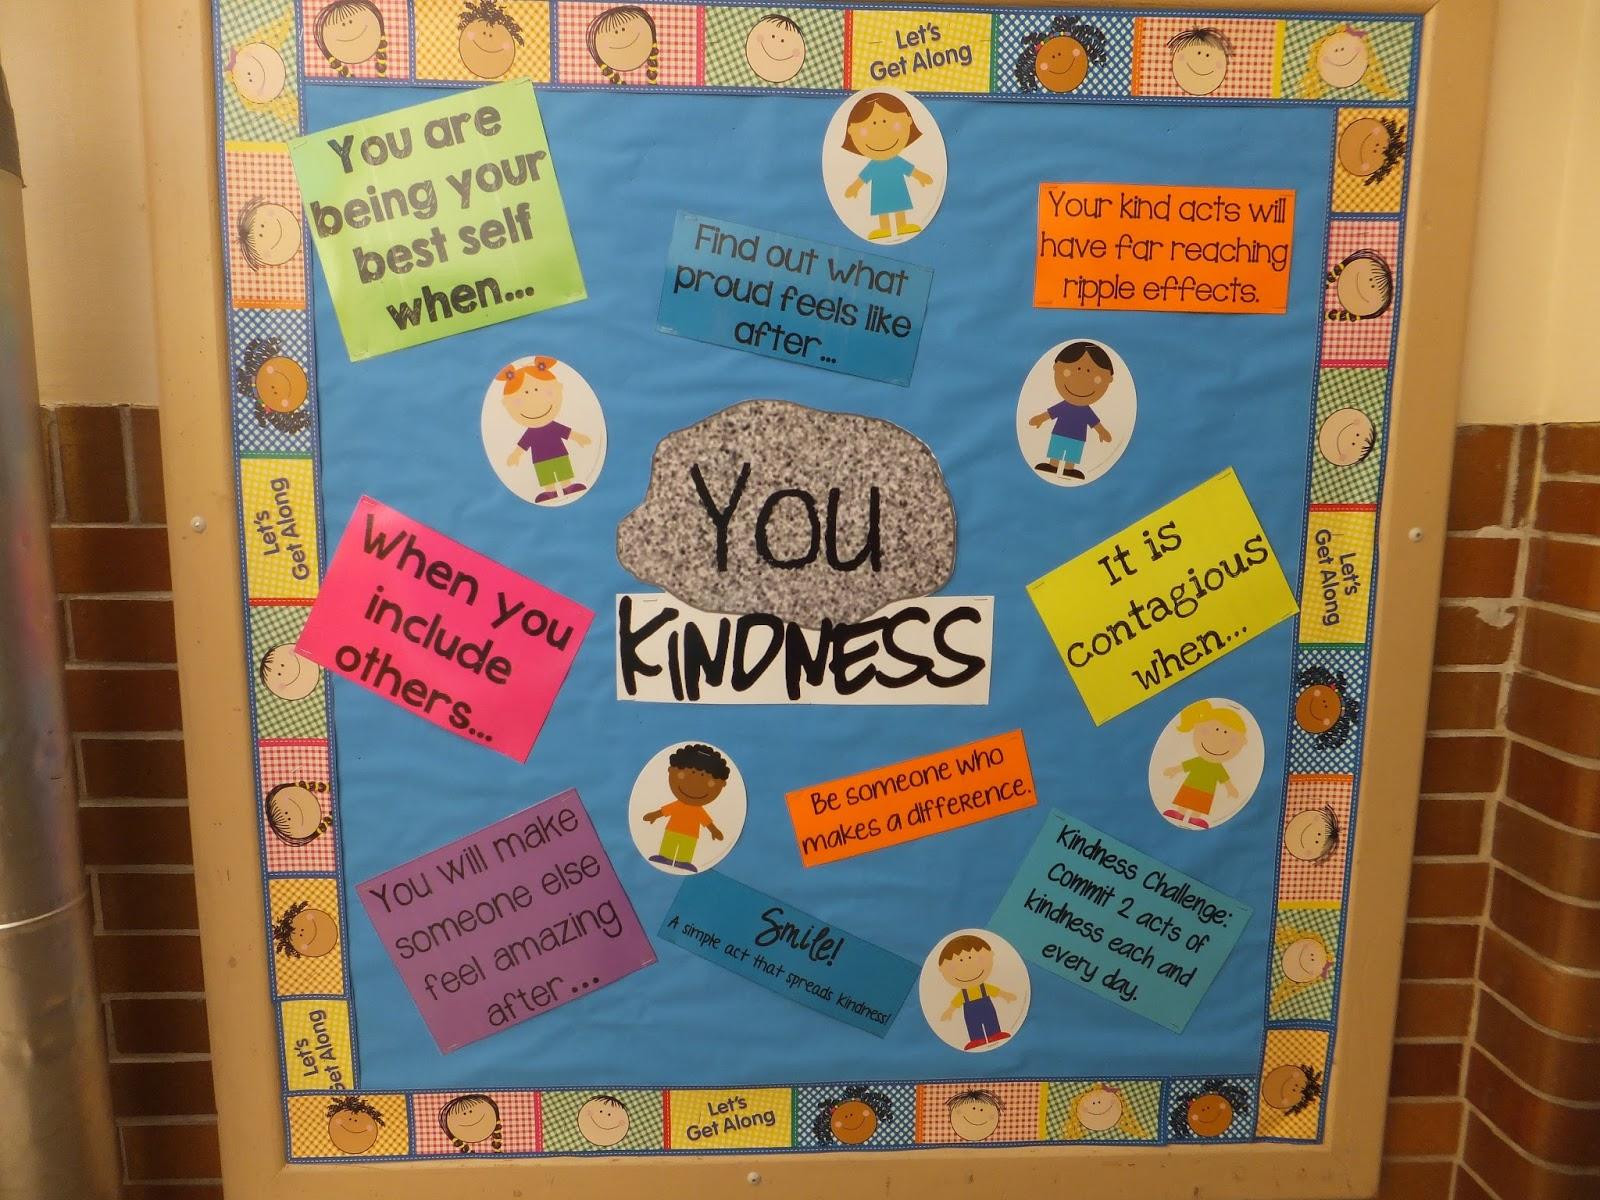 10 Lovely Bulletin Board Ideas For Elementary School entirely elementaryschool counseling you rock kindness bulletin 1 2020